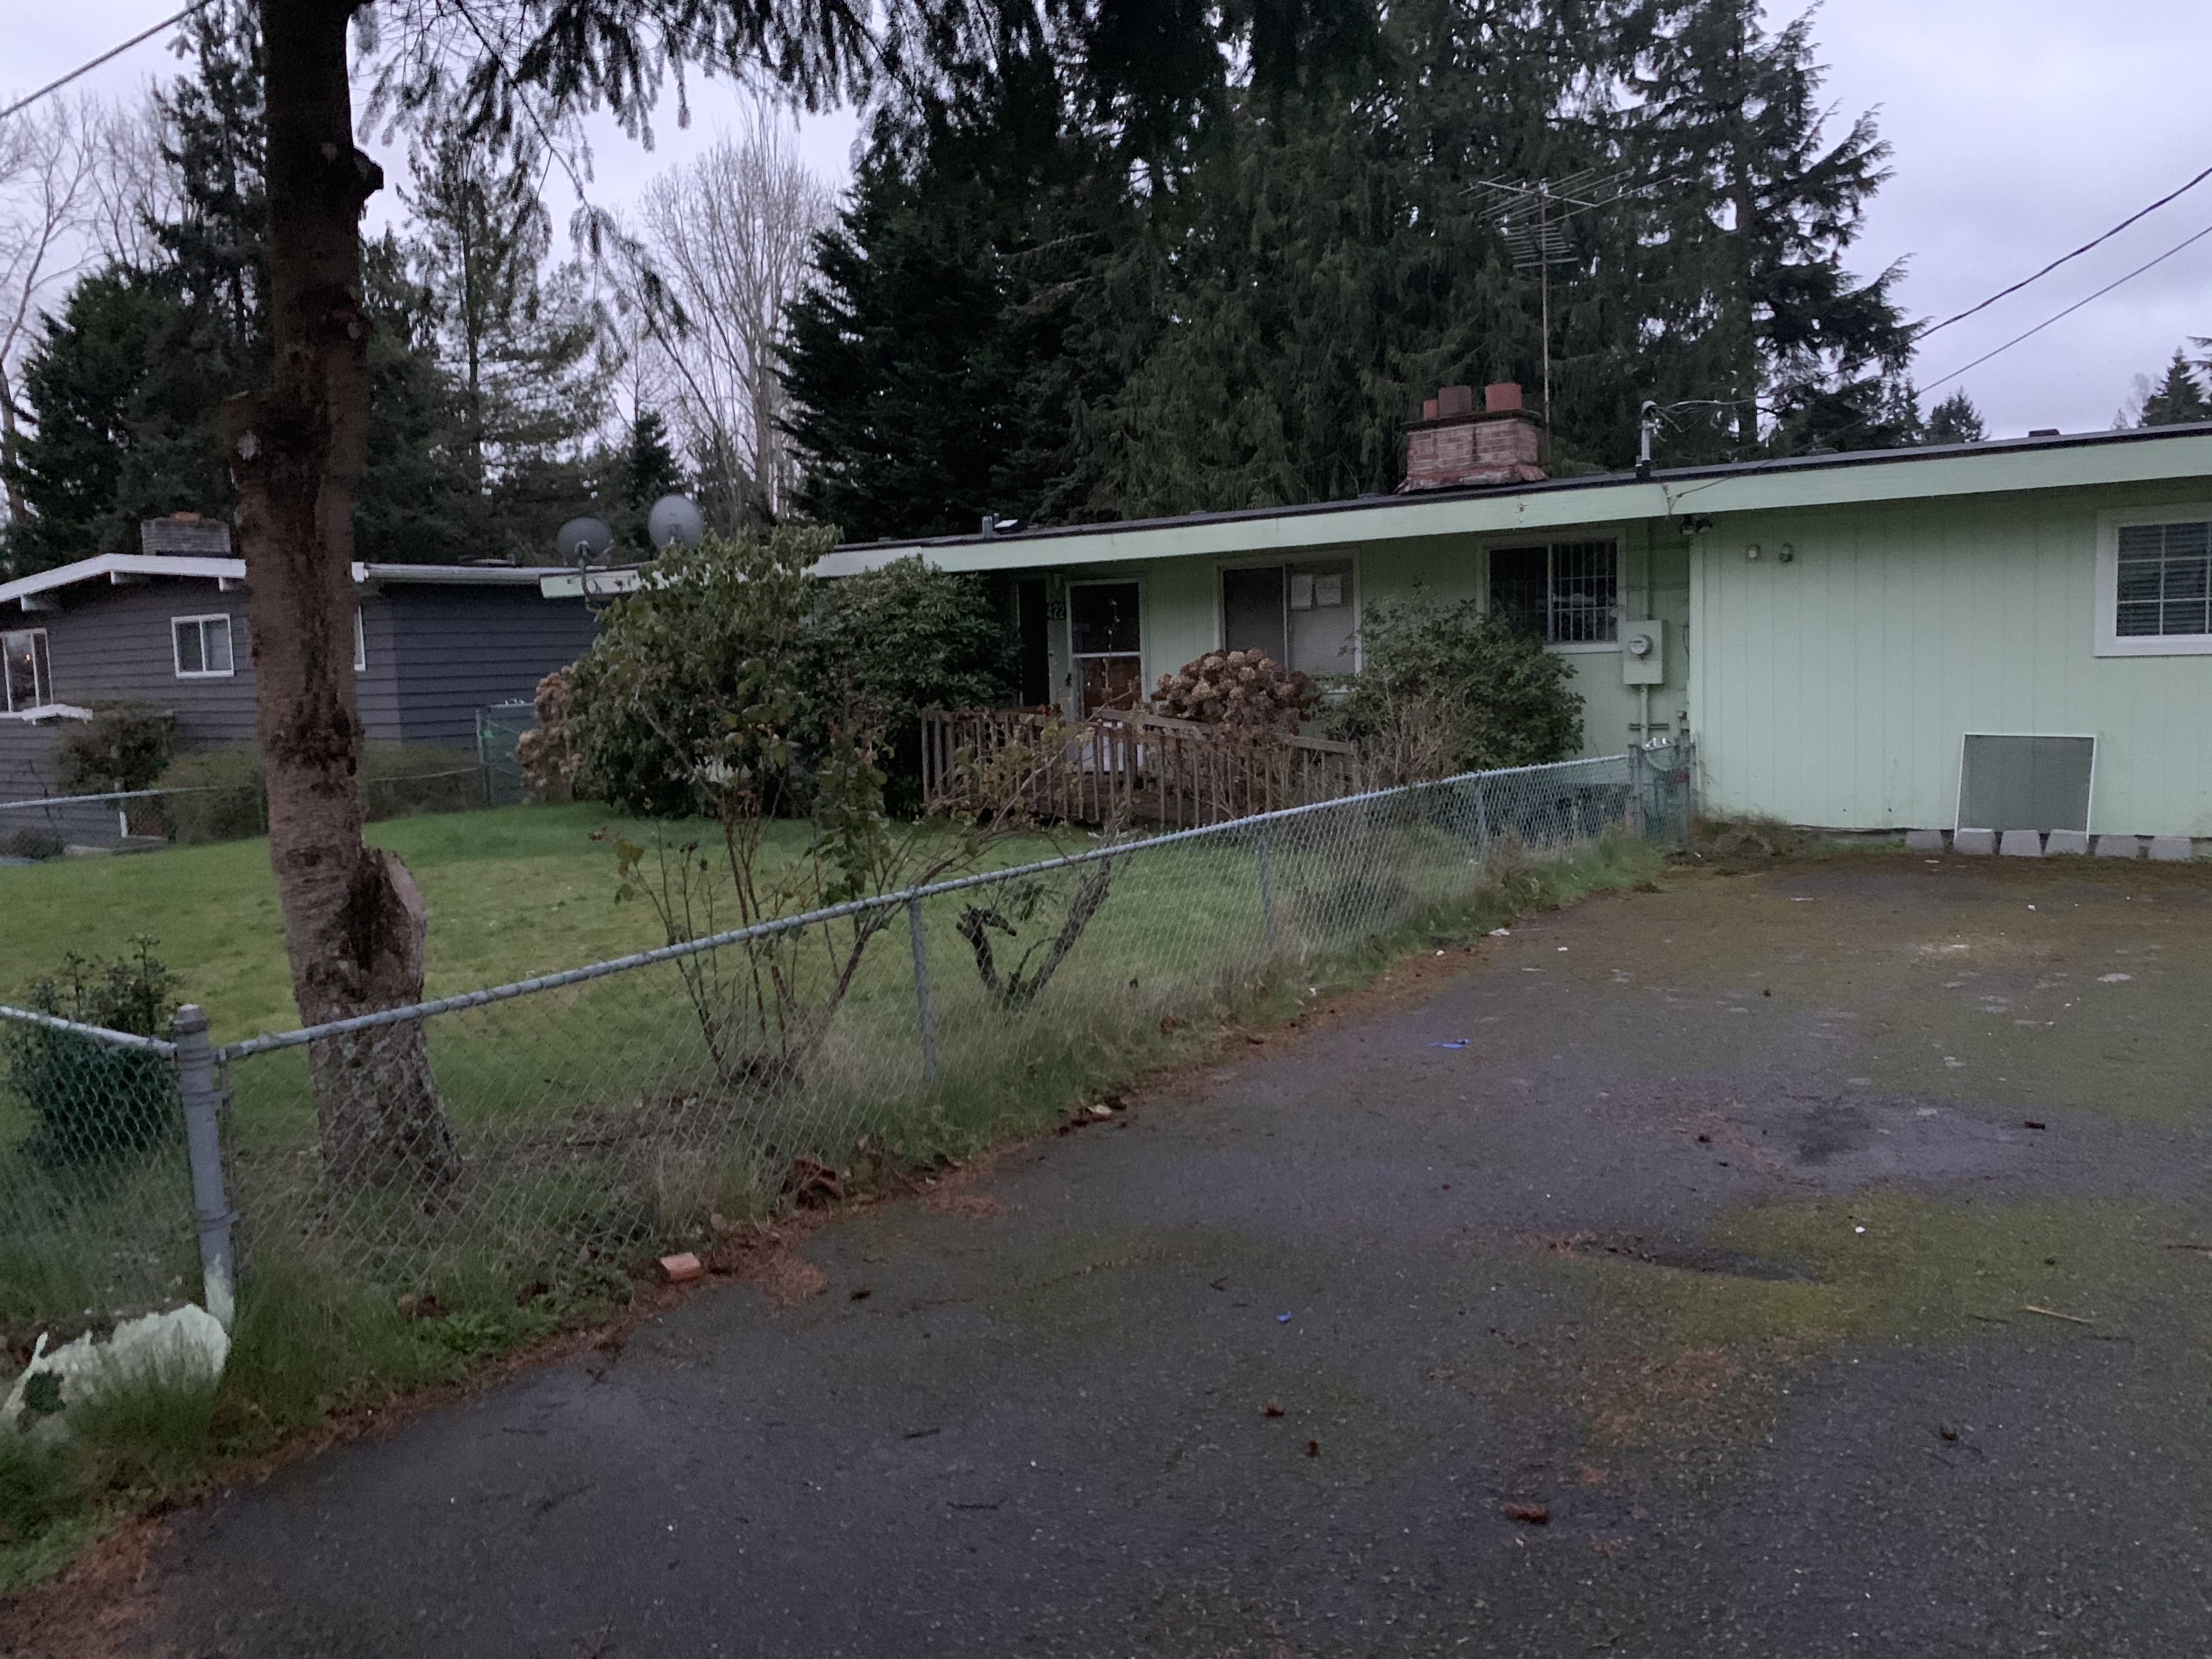 Online Auction: Single Family Home 4223 S. 261st Street, Kent, WA